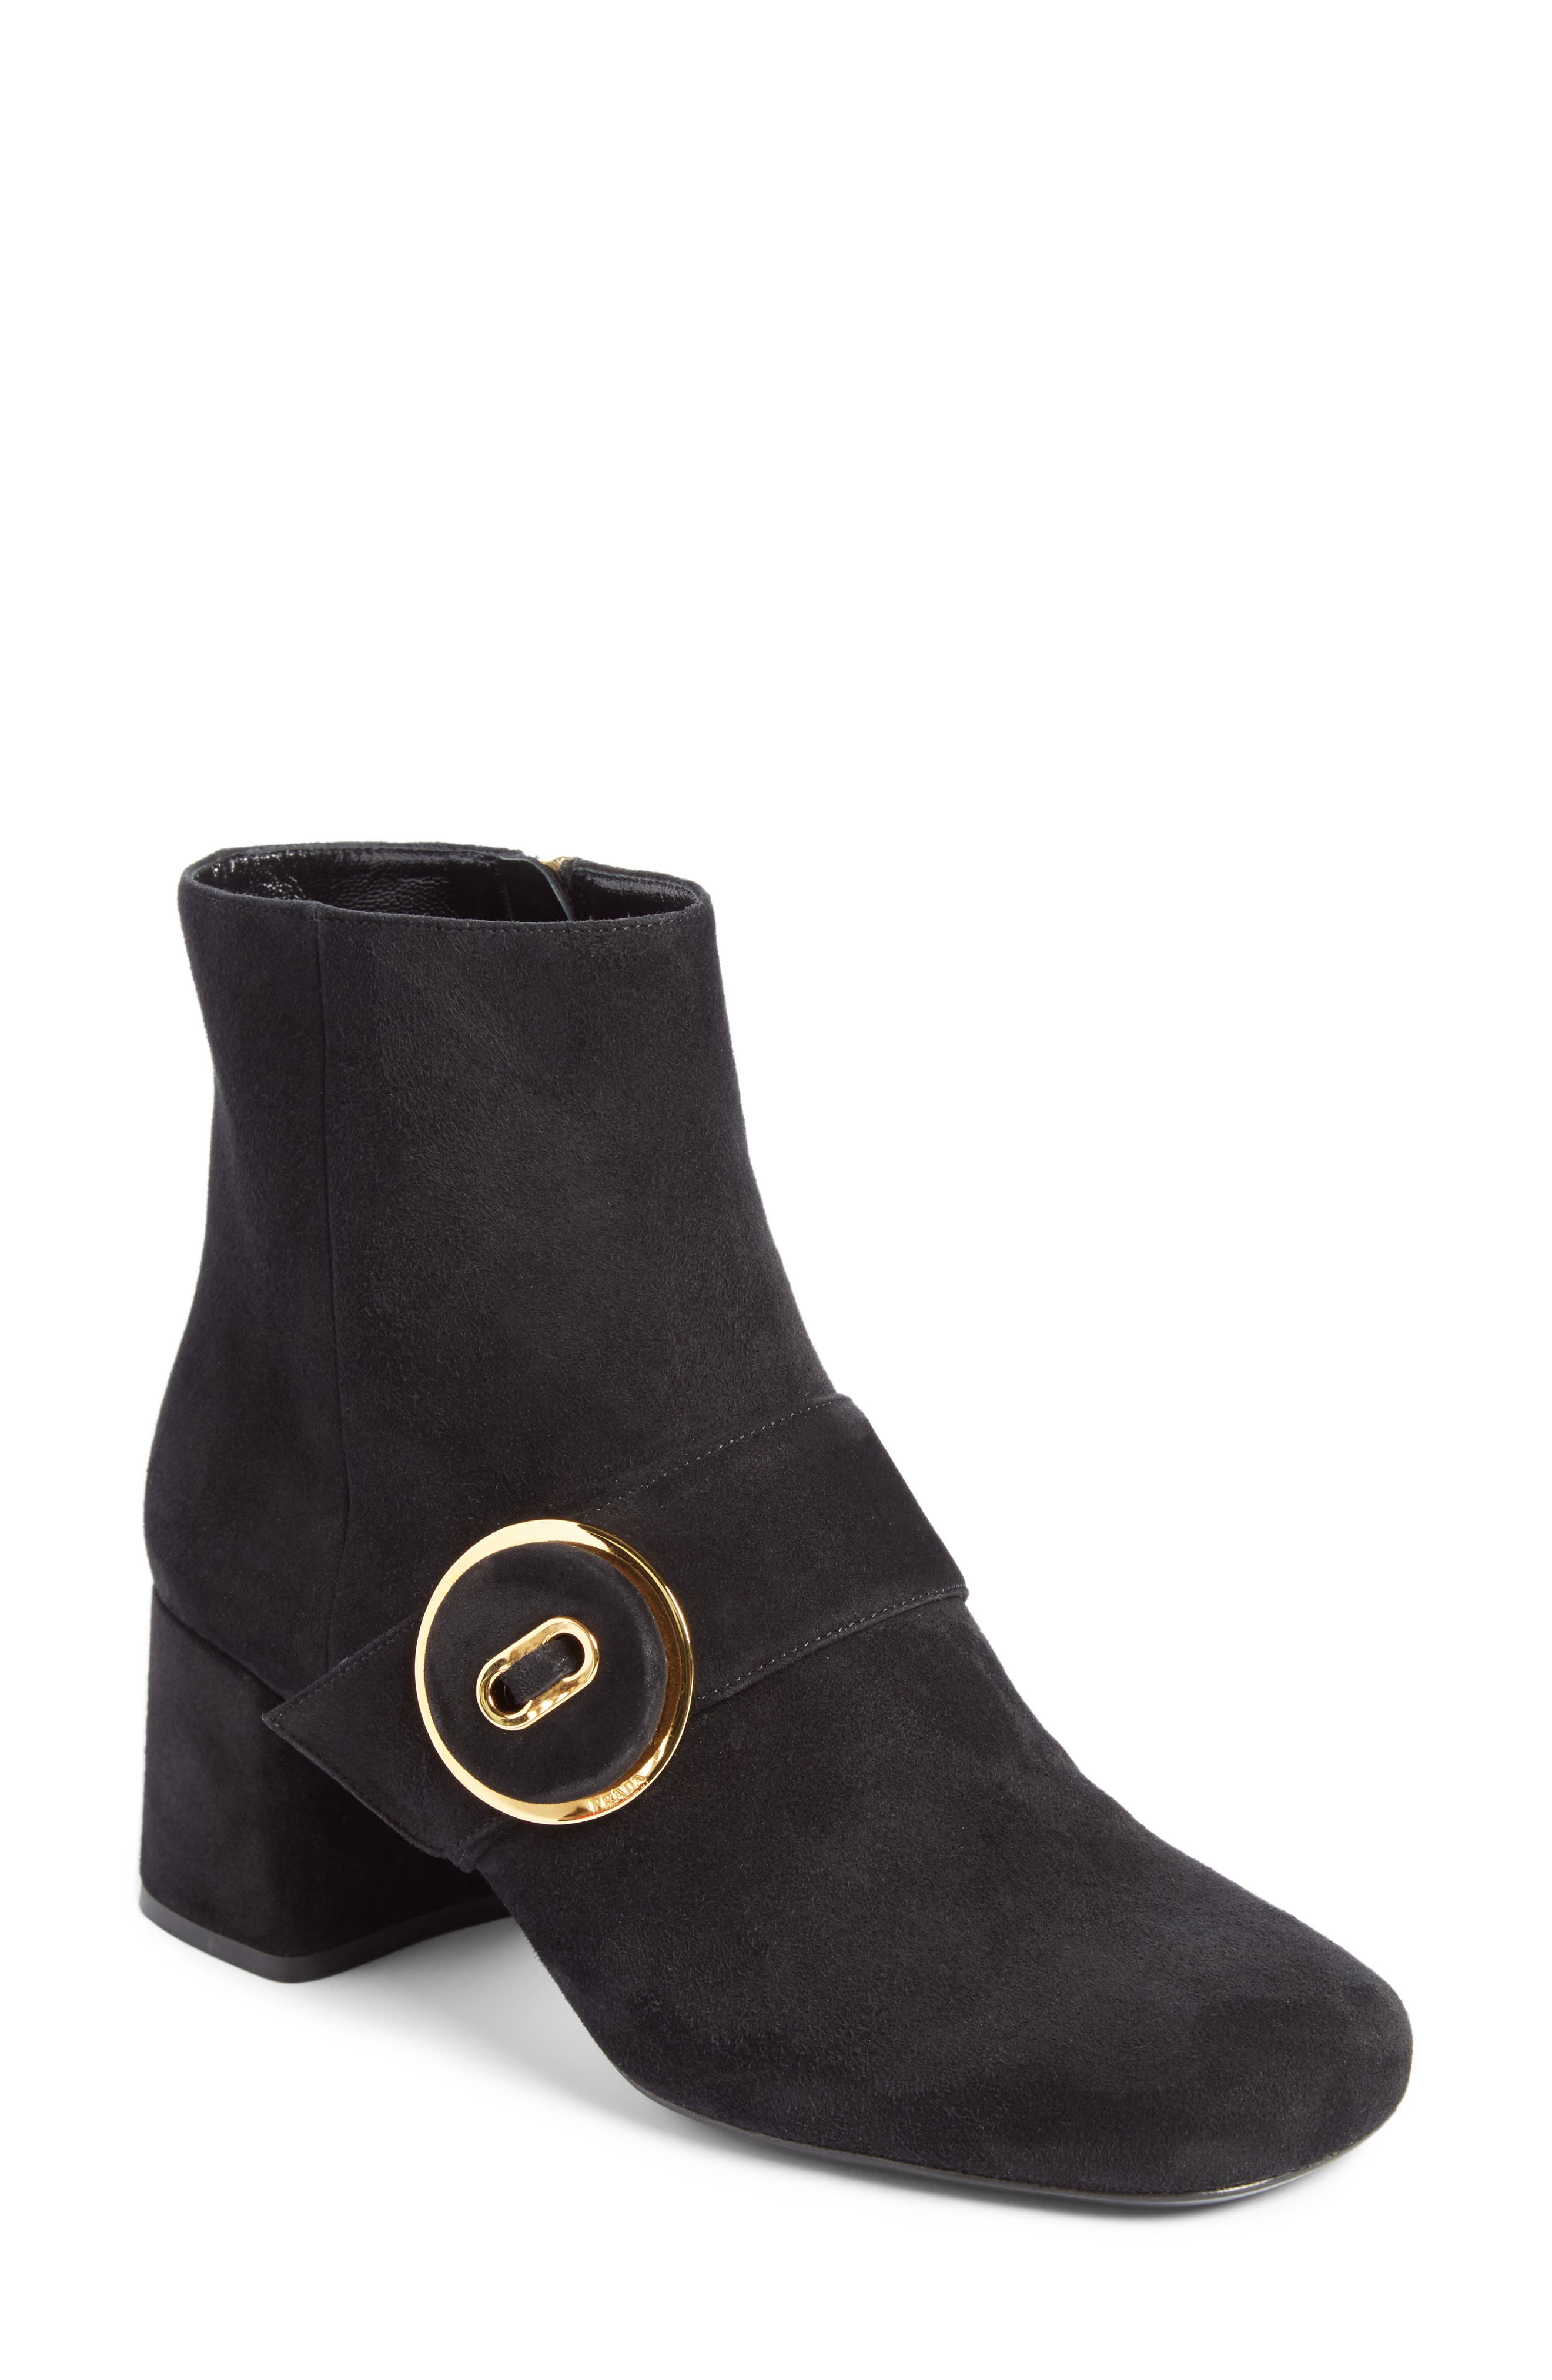 Alternate Image 1 Selected - Prada Button Bootie (Women)